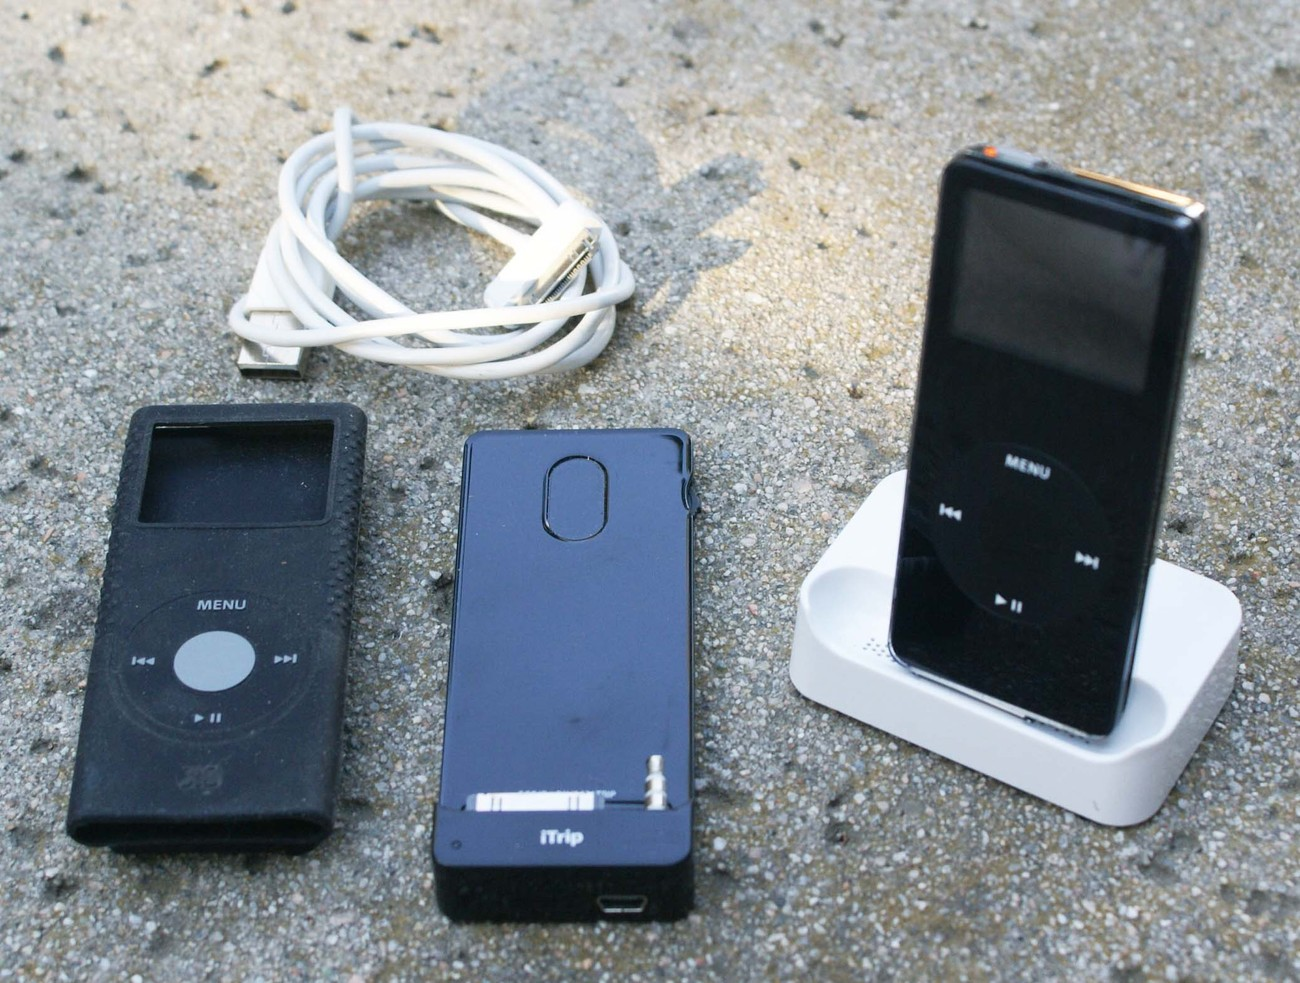 apple ipod nano 4 gb black 1st generation ipods mp3. Black Bedroom Furniture Sets. Home Design Ideas